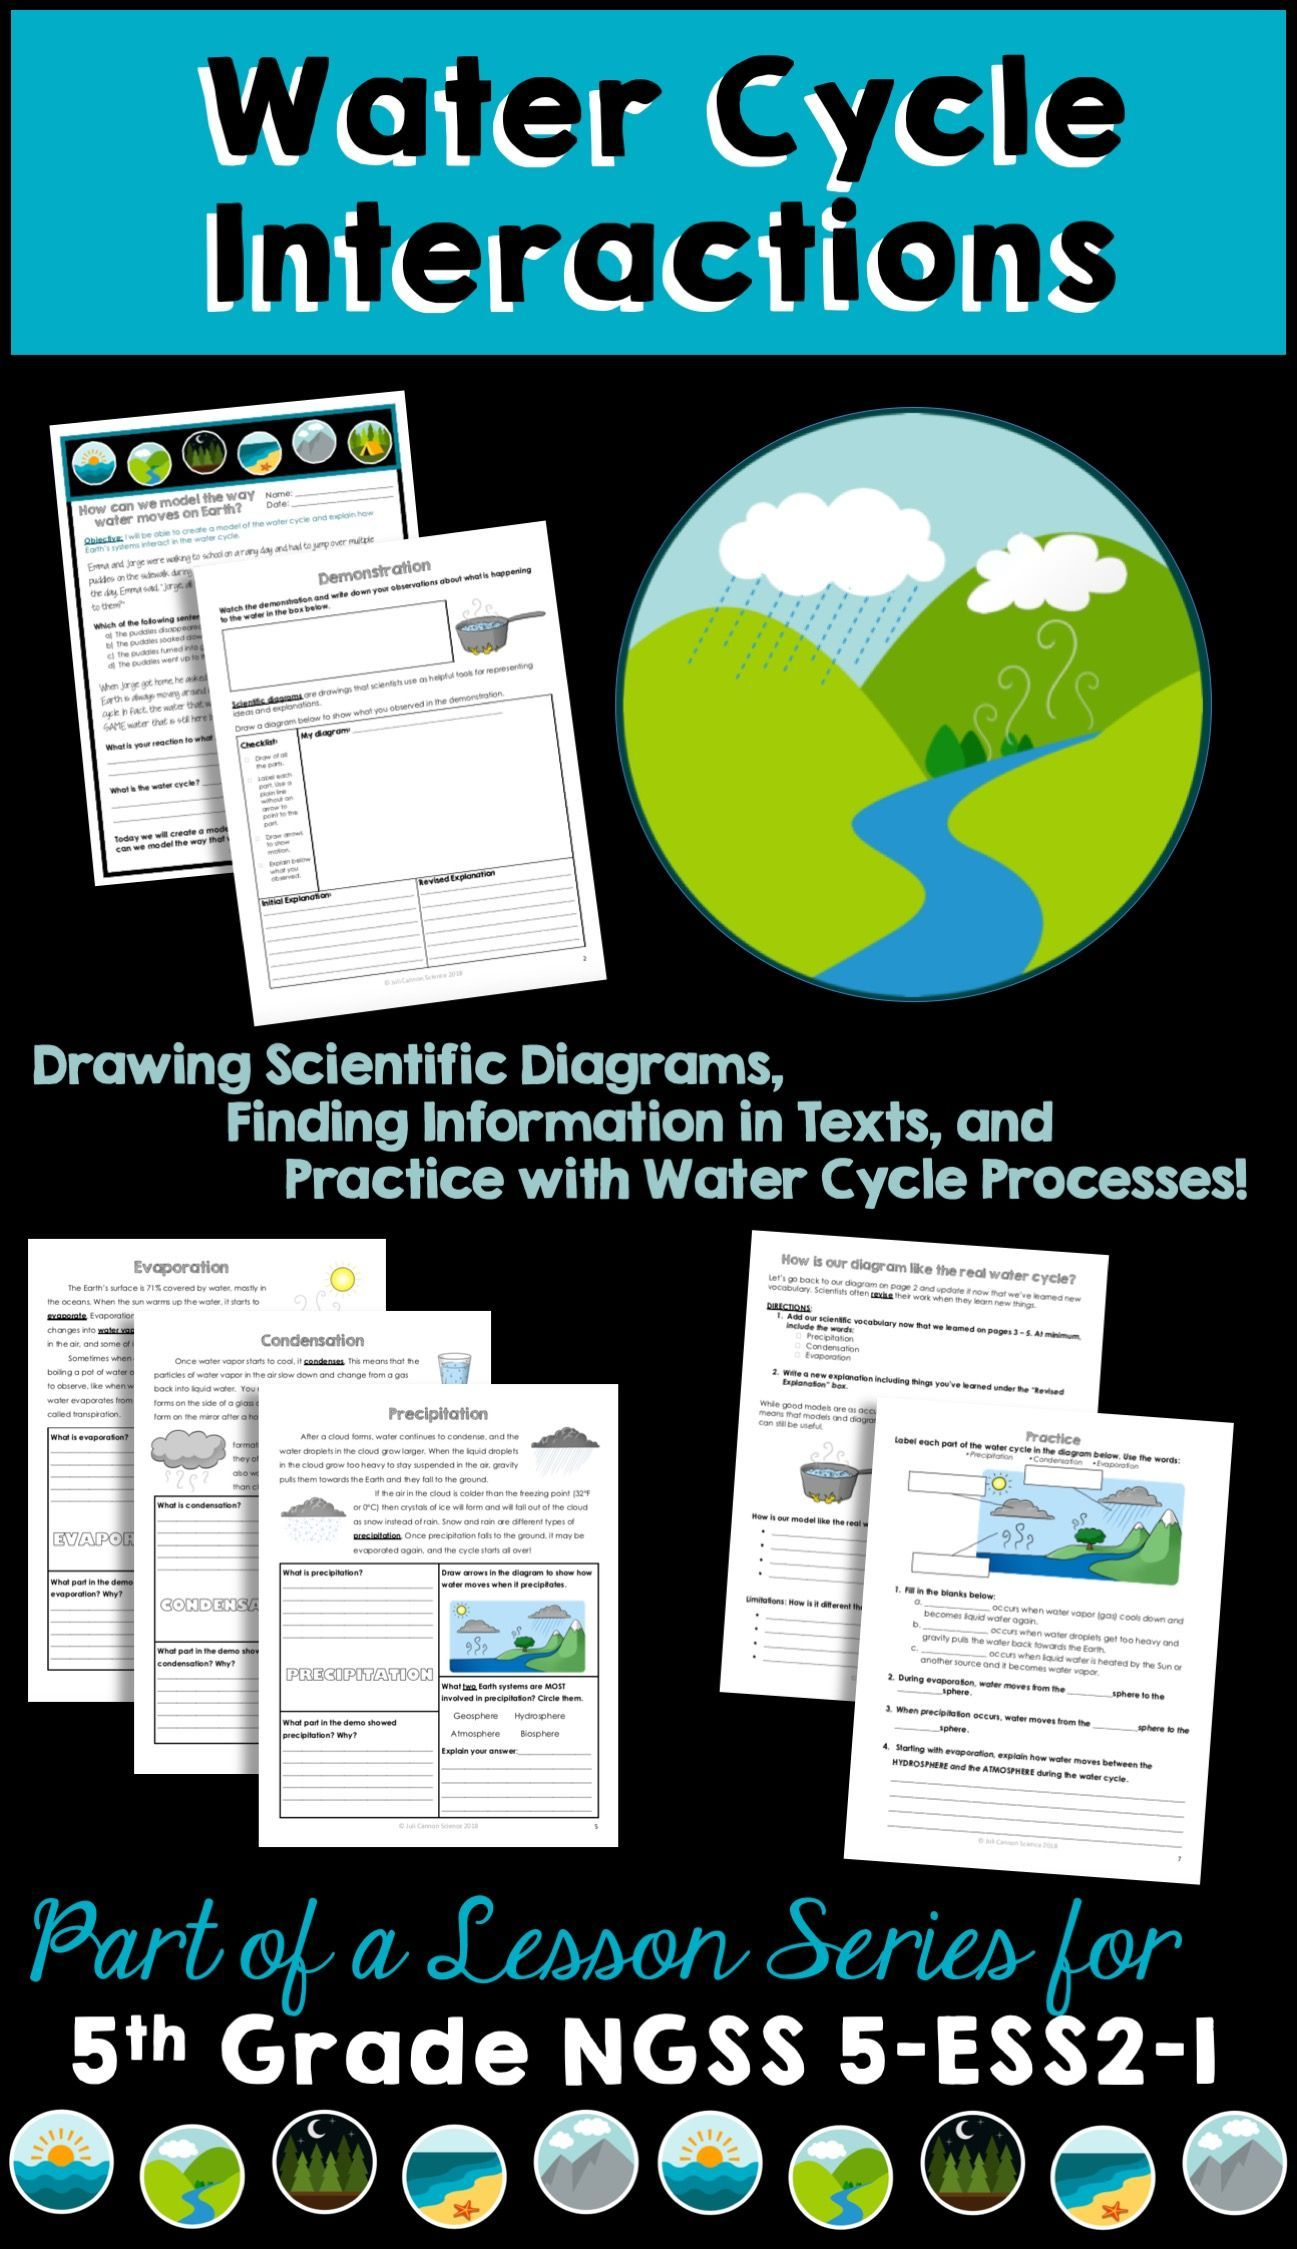 Ngss 5 Ess2 1 Water Cycle Introduction 5th Grade